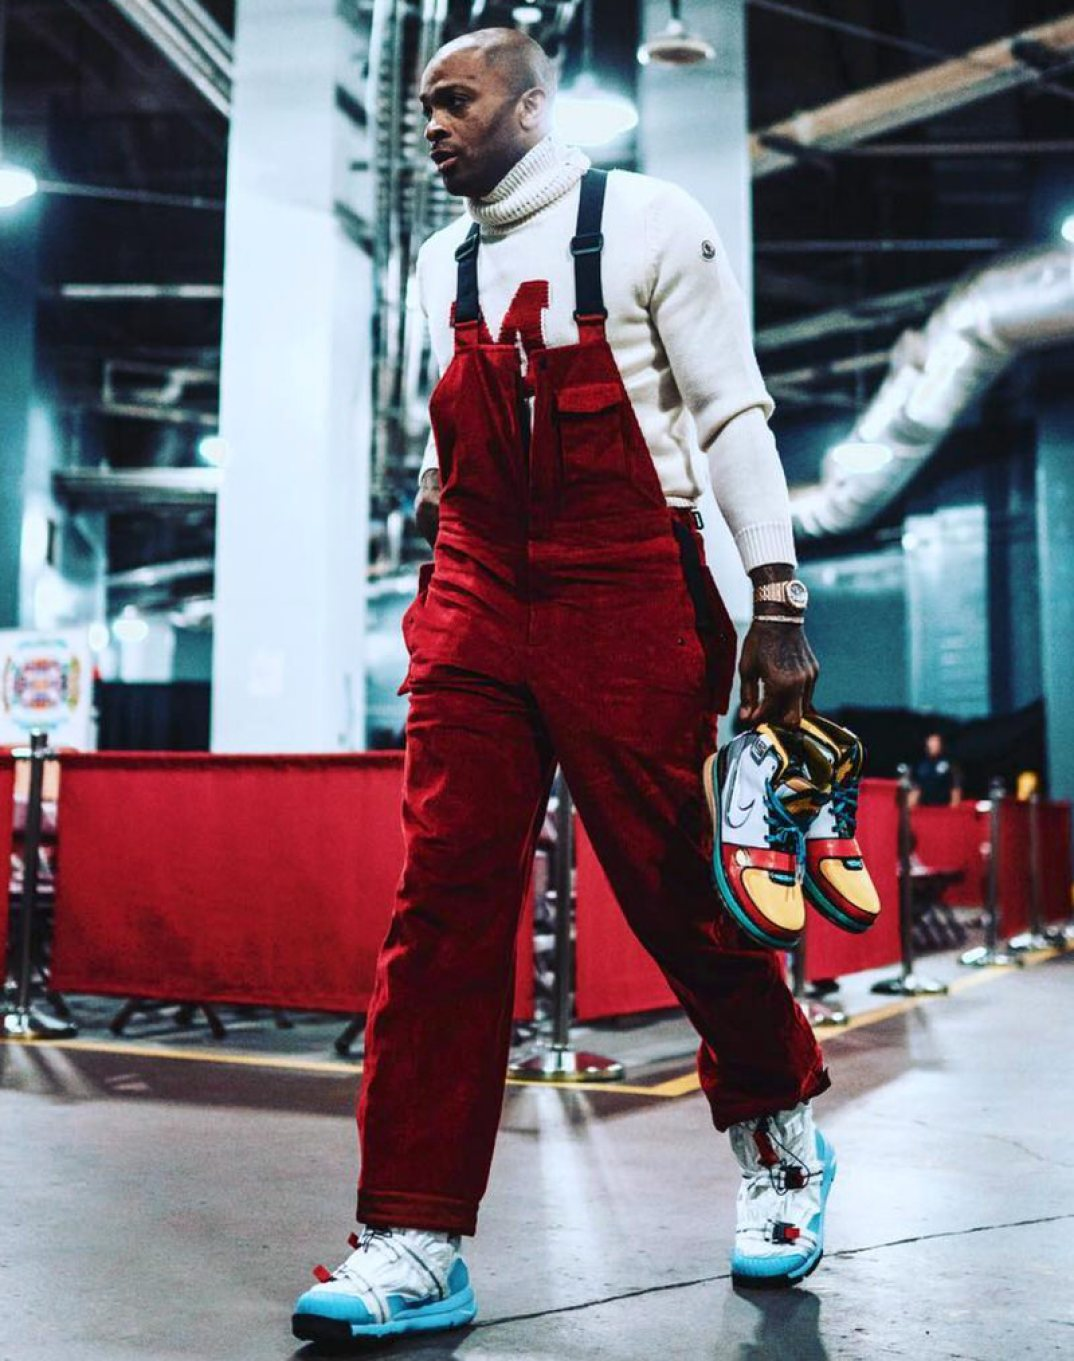 PJ Tucker in the Tom Sachs x Nike Mars Yard Overshoe